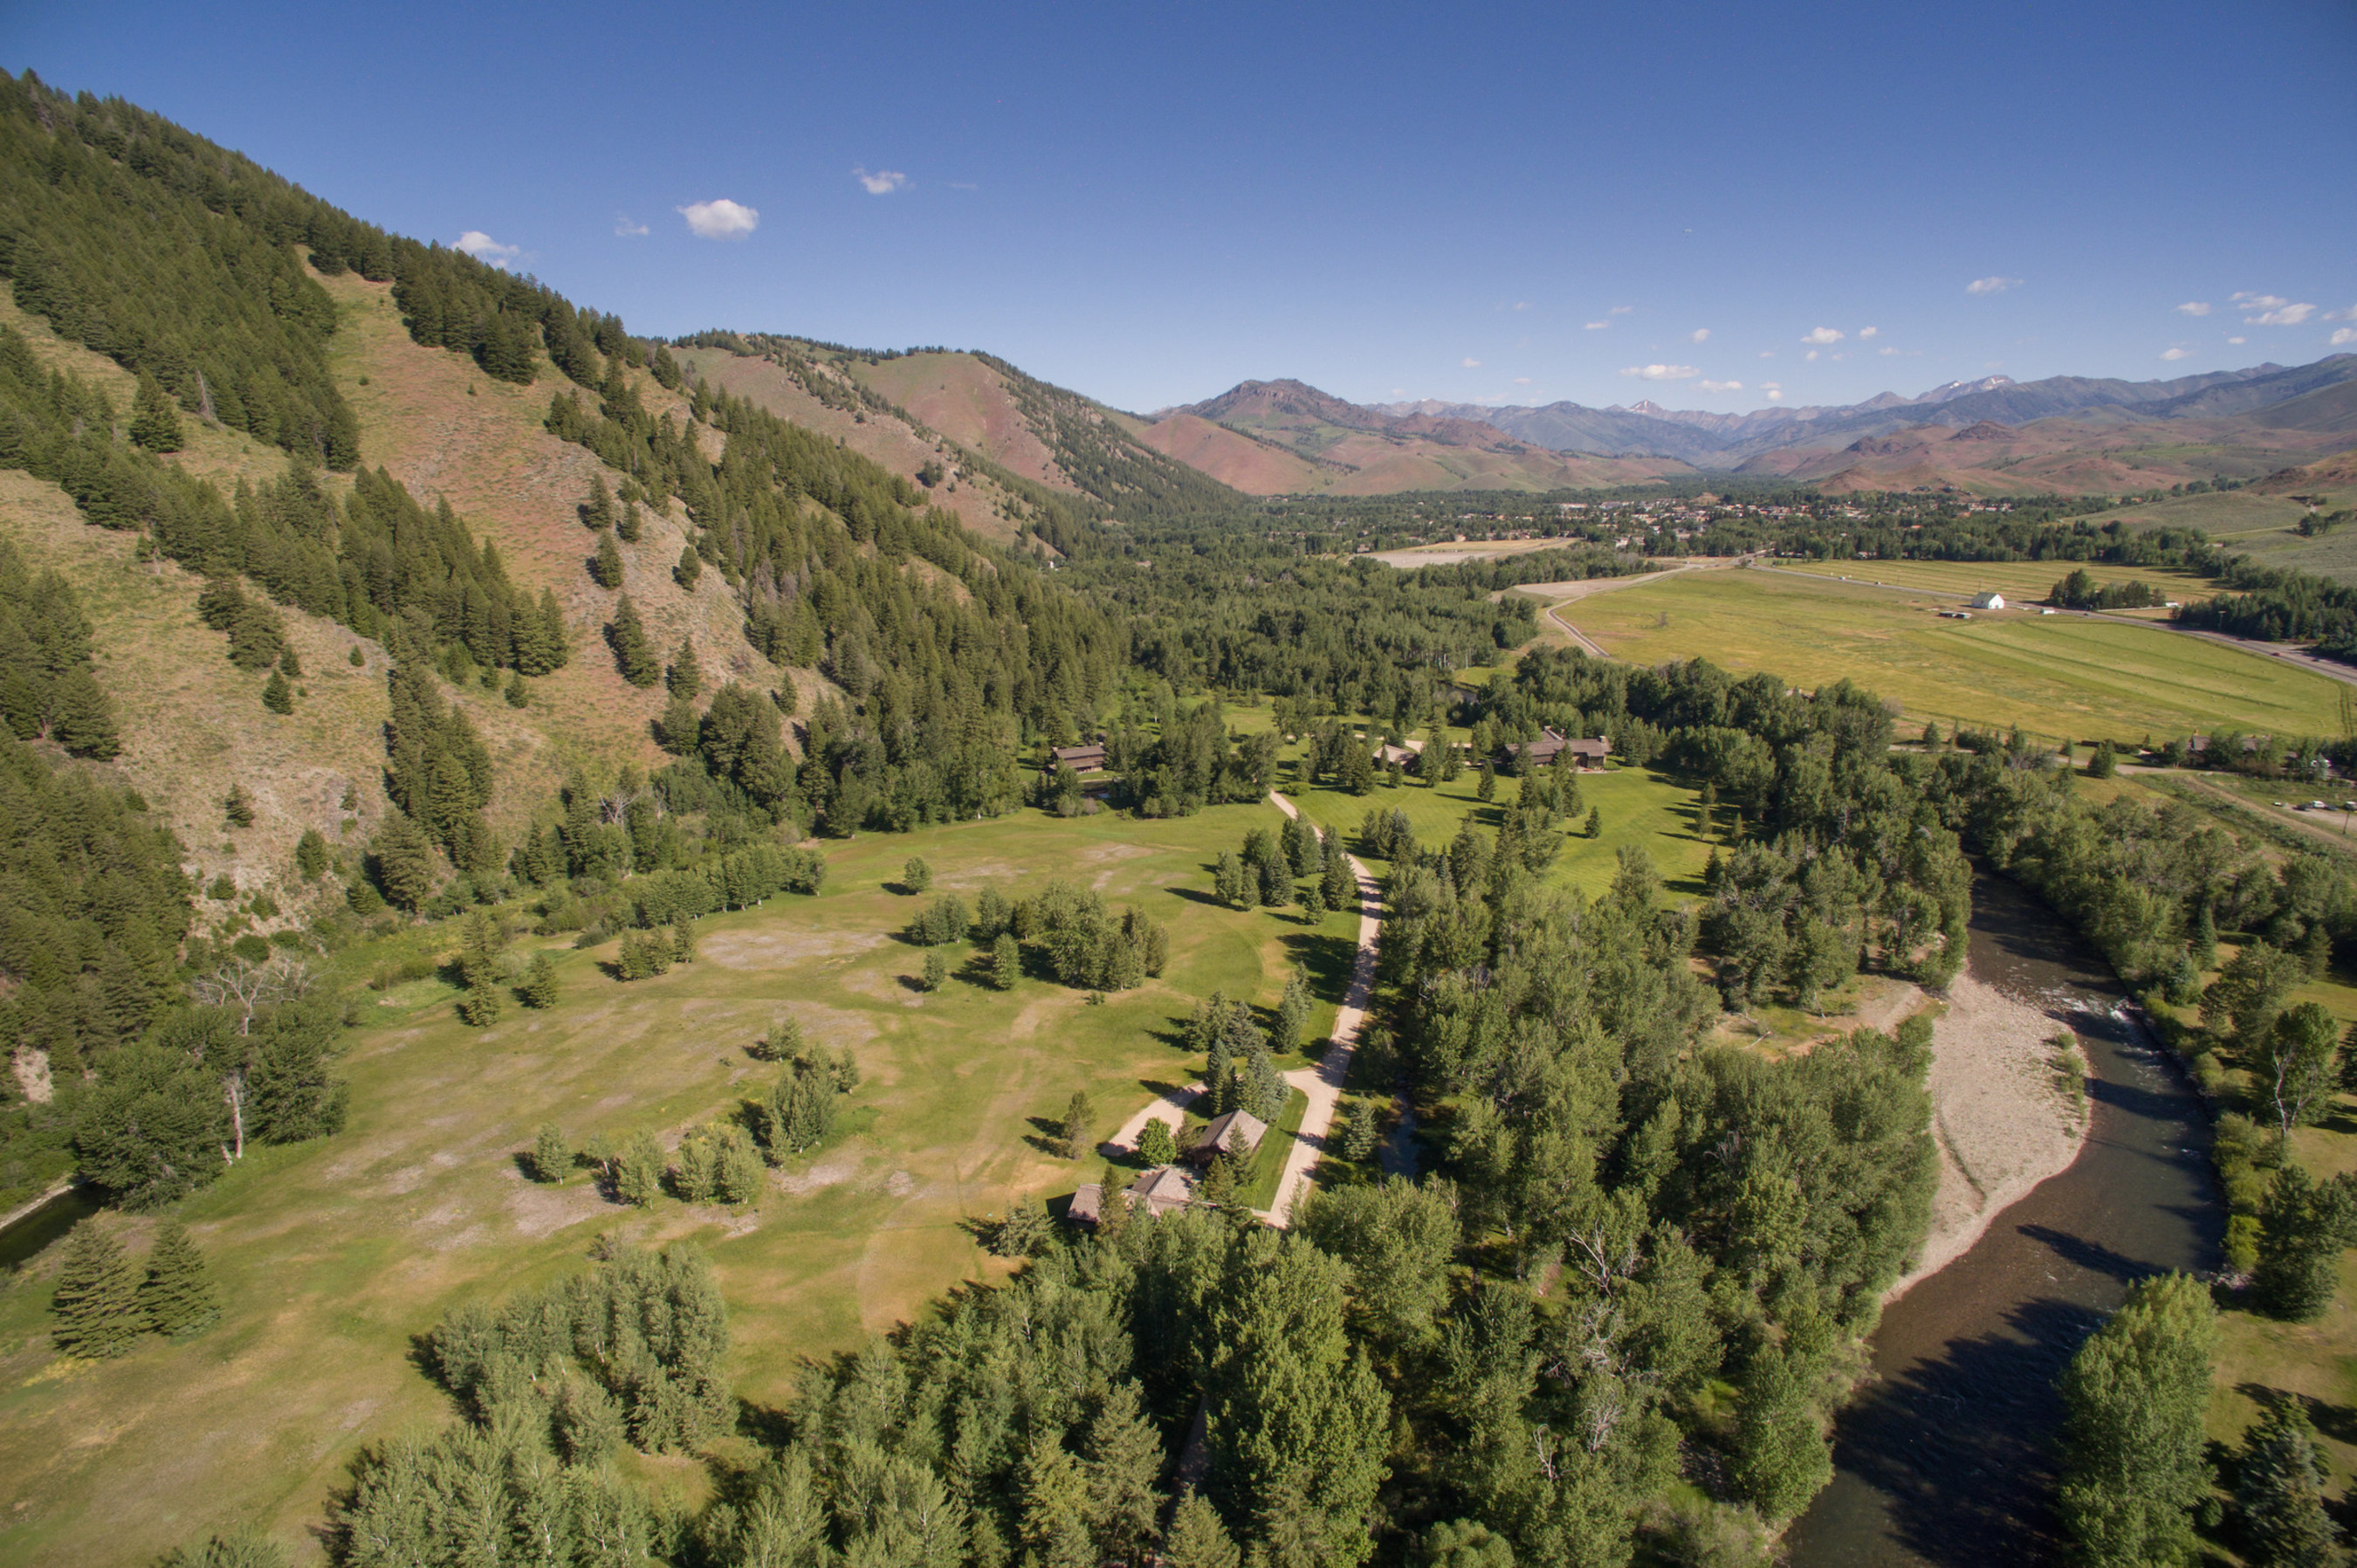 Concierge Auctions To Sell A Rocky Mountain Property Like No Other -- Unmatched Privacy, Proximity & Acreage In One Of The World's Premier Ski Resorts: Sun Valley, Idaho